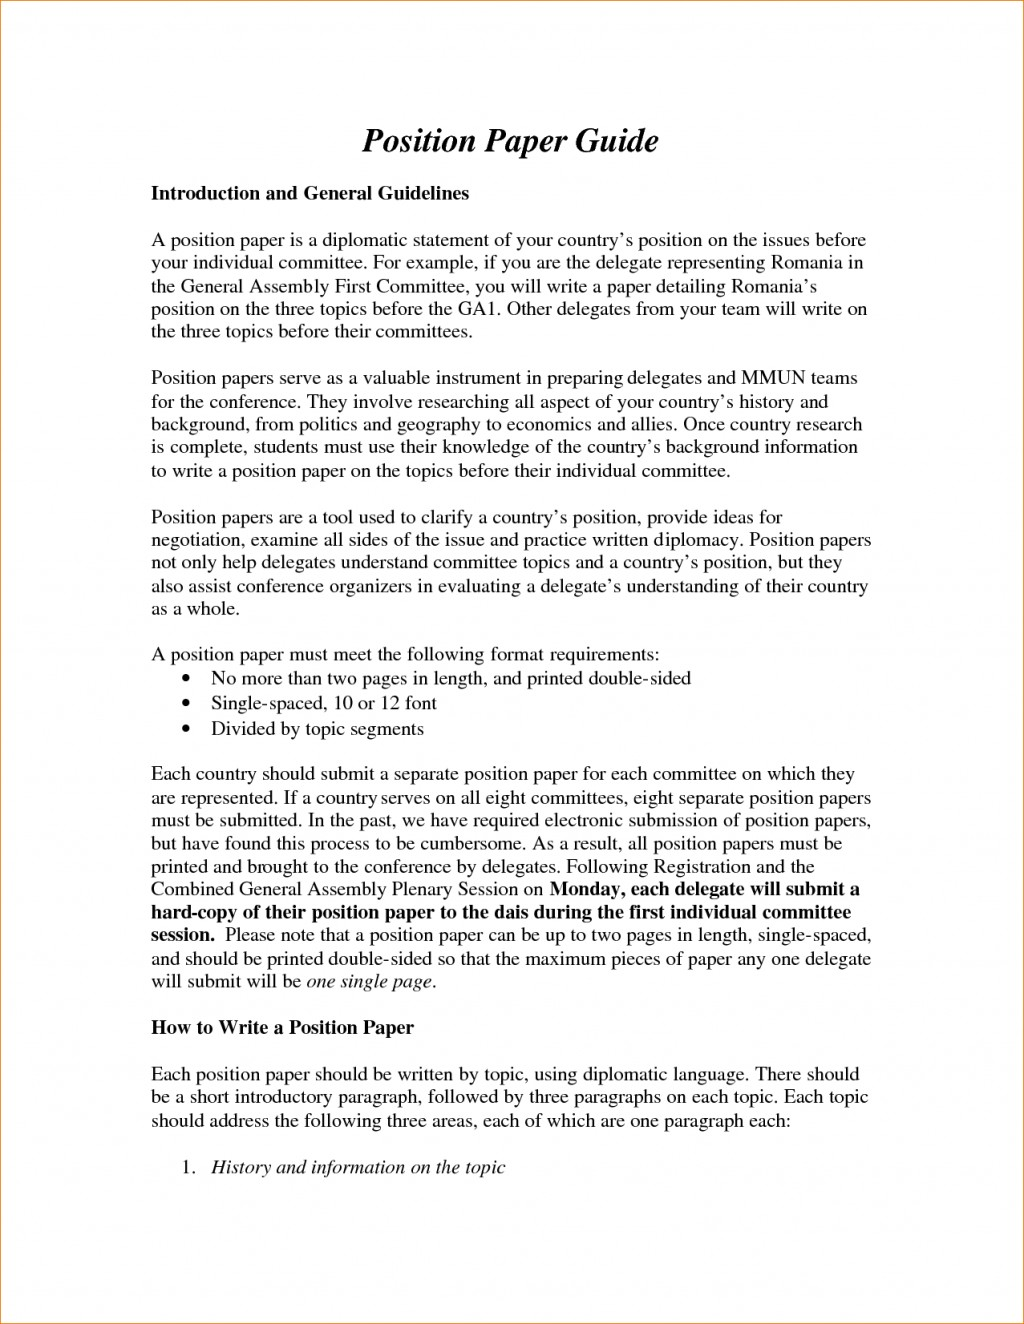 004 Research Paper Proposal Template Awesome Sample Topic Format Large